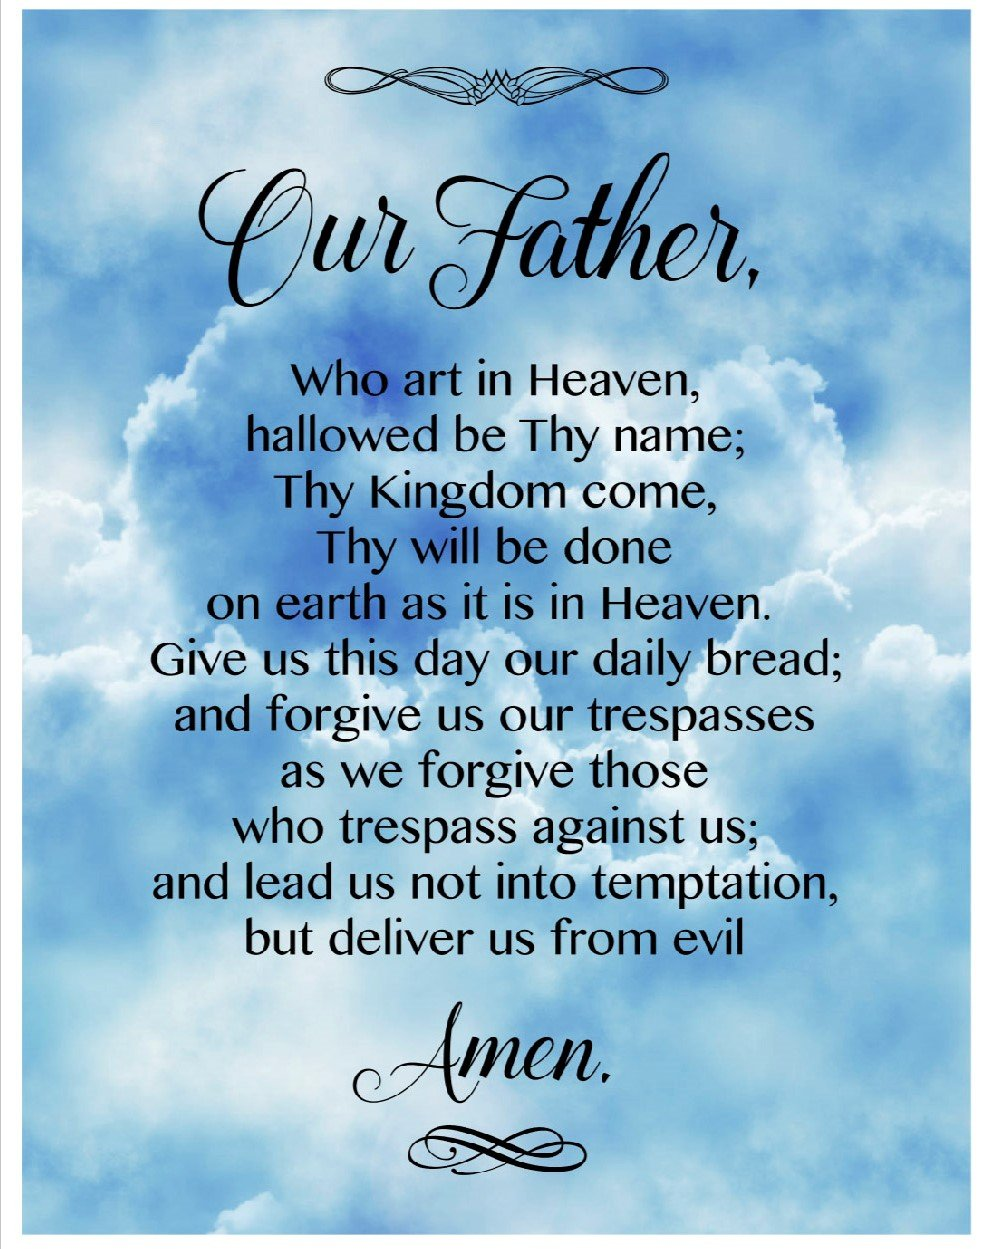 DT-Digital Prints DX-1349-1 Blue/Multi - Lord's Prayer 44 x 36 Panel